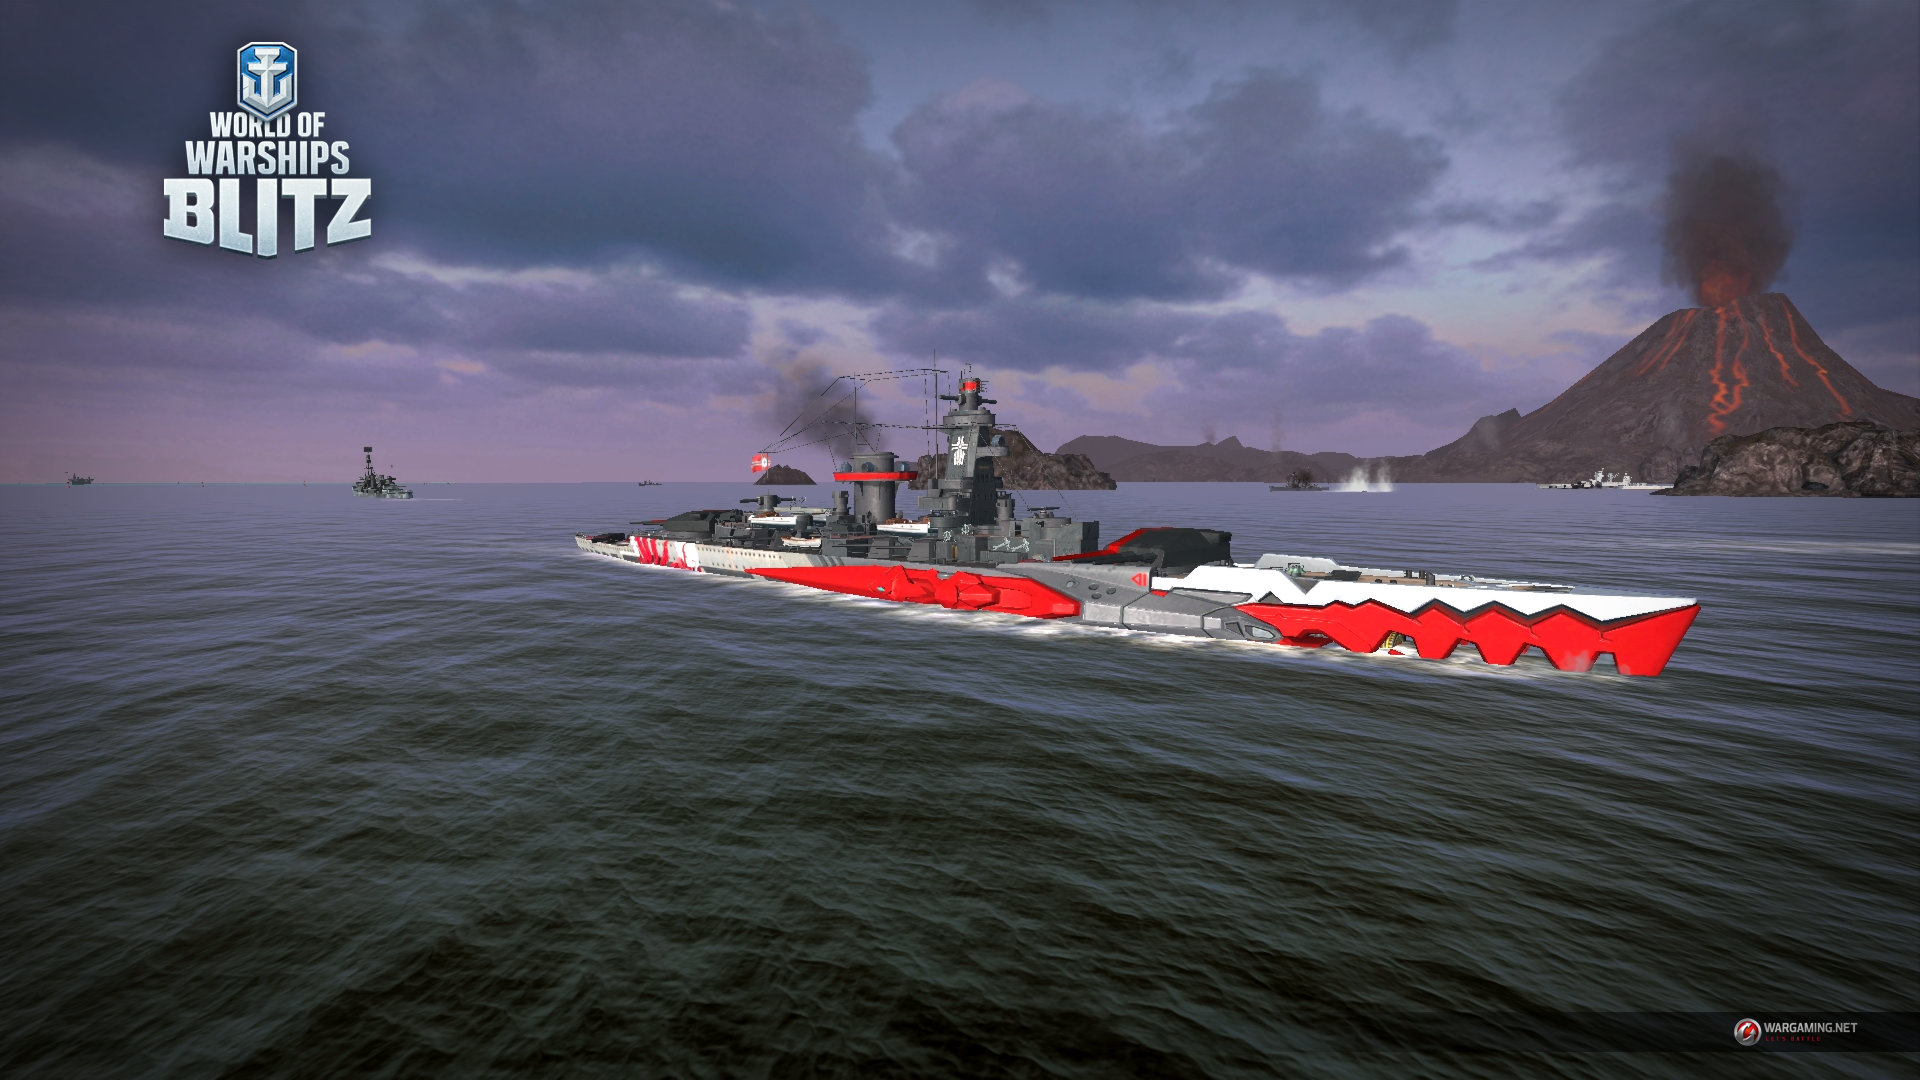 In World of Warships Blitz will add ships with a touch of